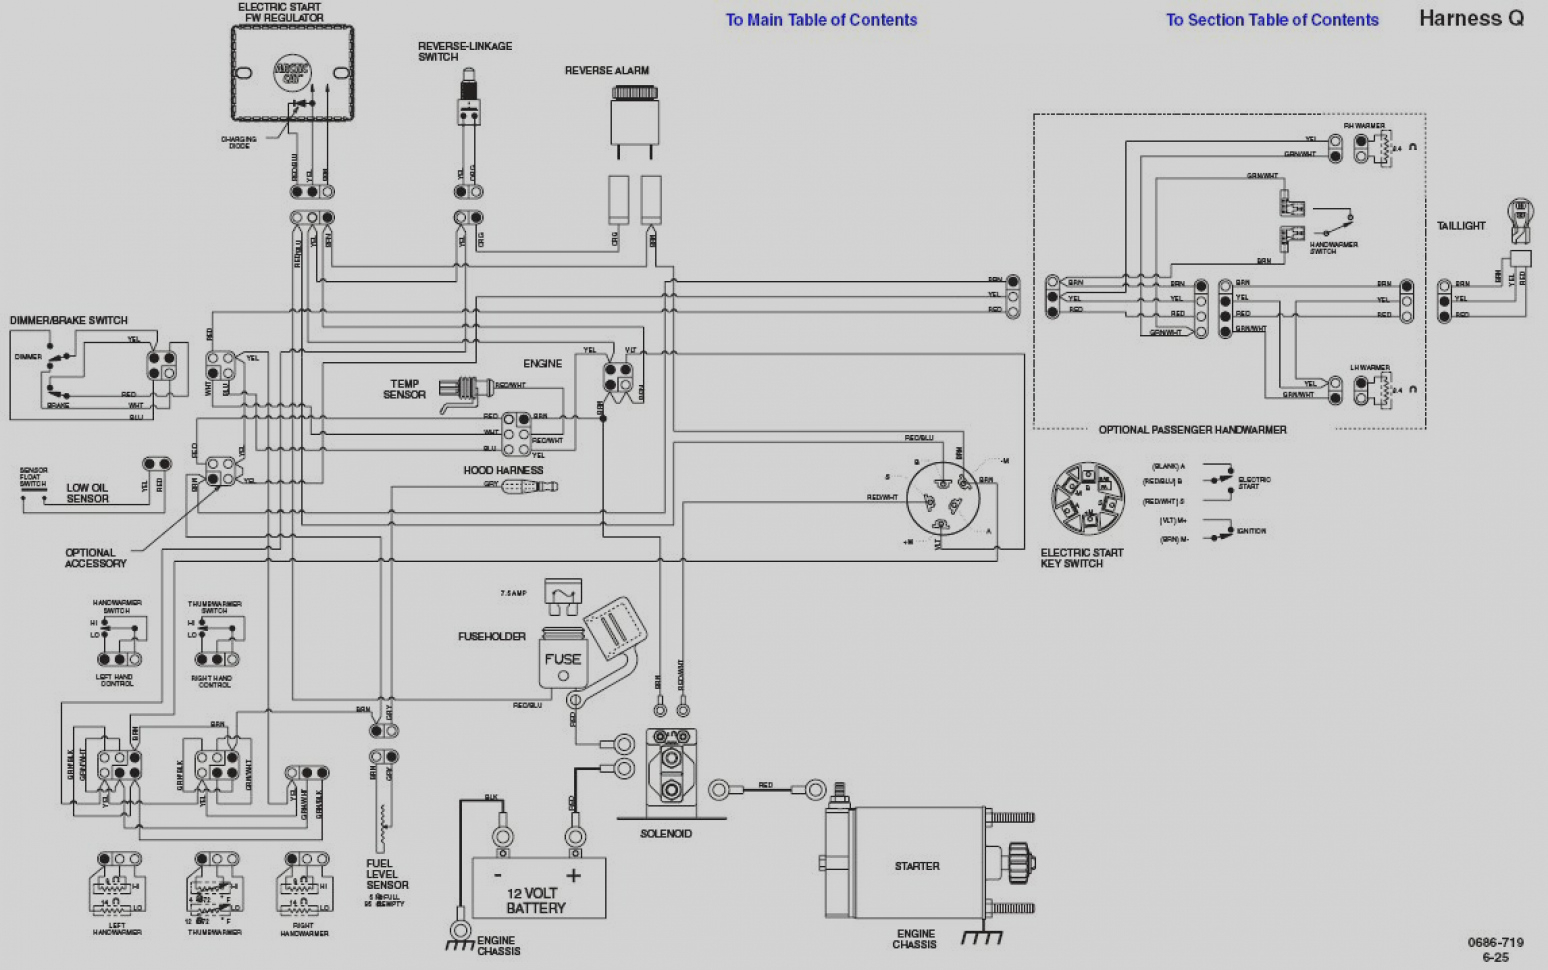 hight resolution of roto phase converter wiring diagram sample wiring diagram sample 2002 polaris sportsman 700 wiring diagram polaris